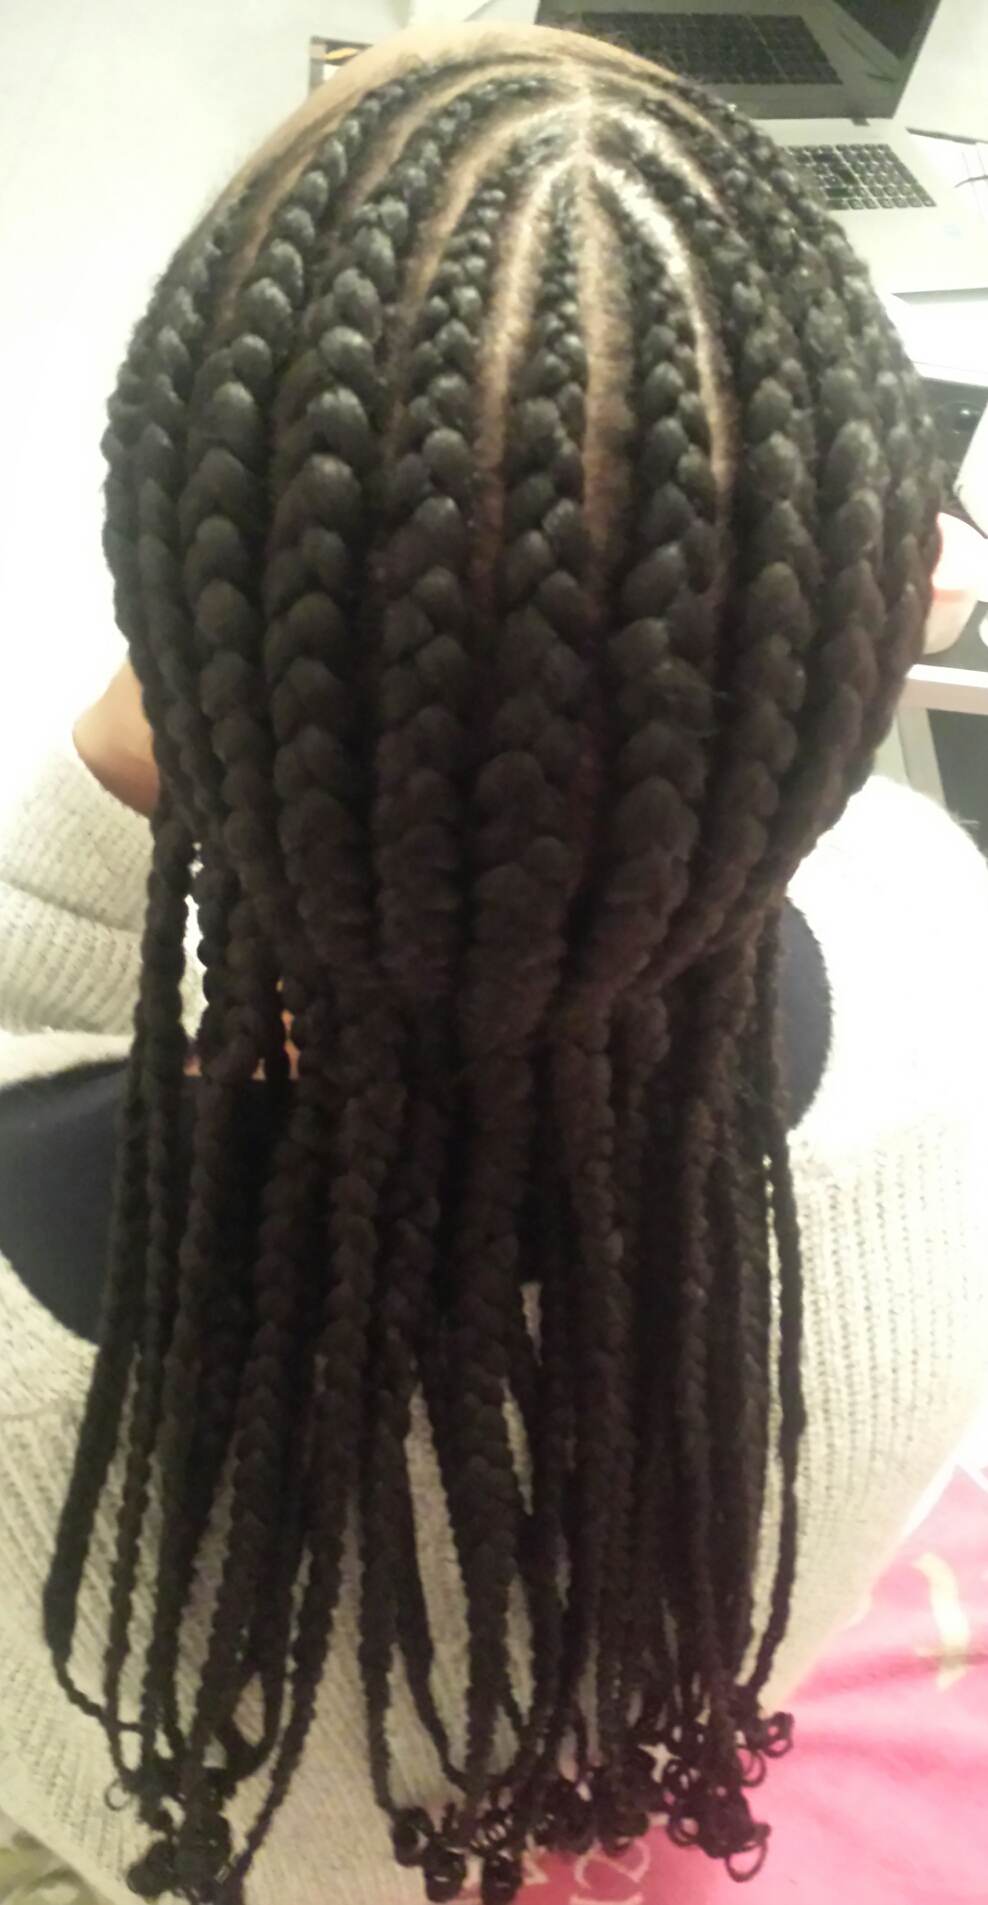 salon de coiffure afro tresse tresses box braids crochet braids vanilles tissages paris 75 77 78 91 92 93 94 95 ZNZZDDKR